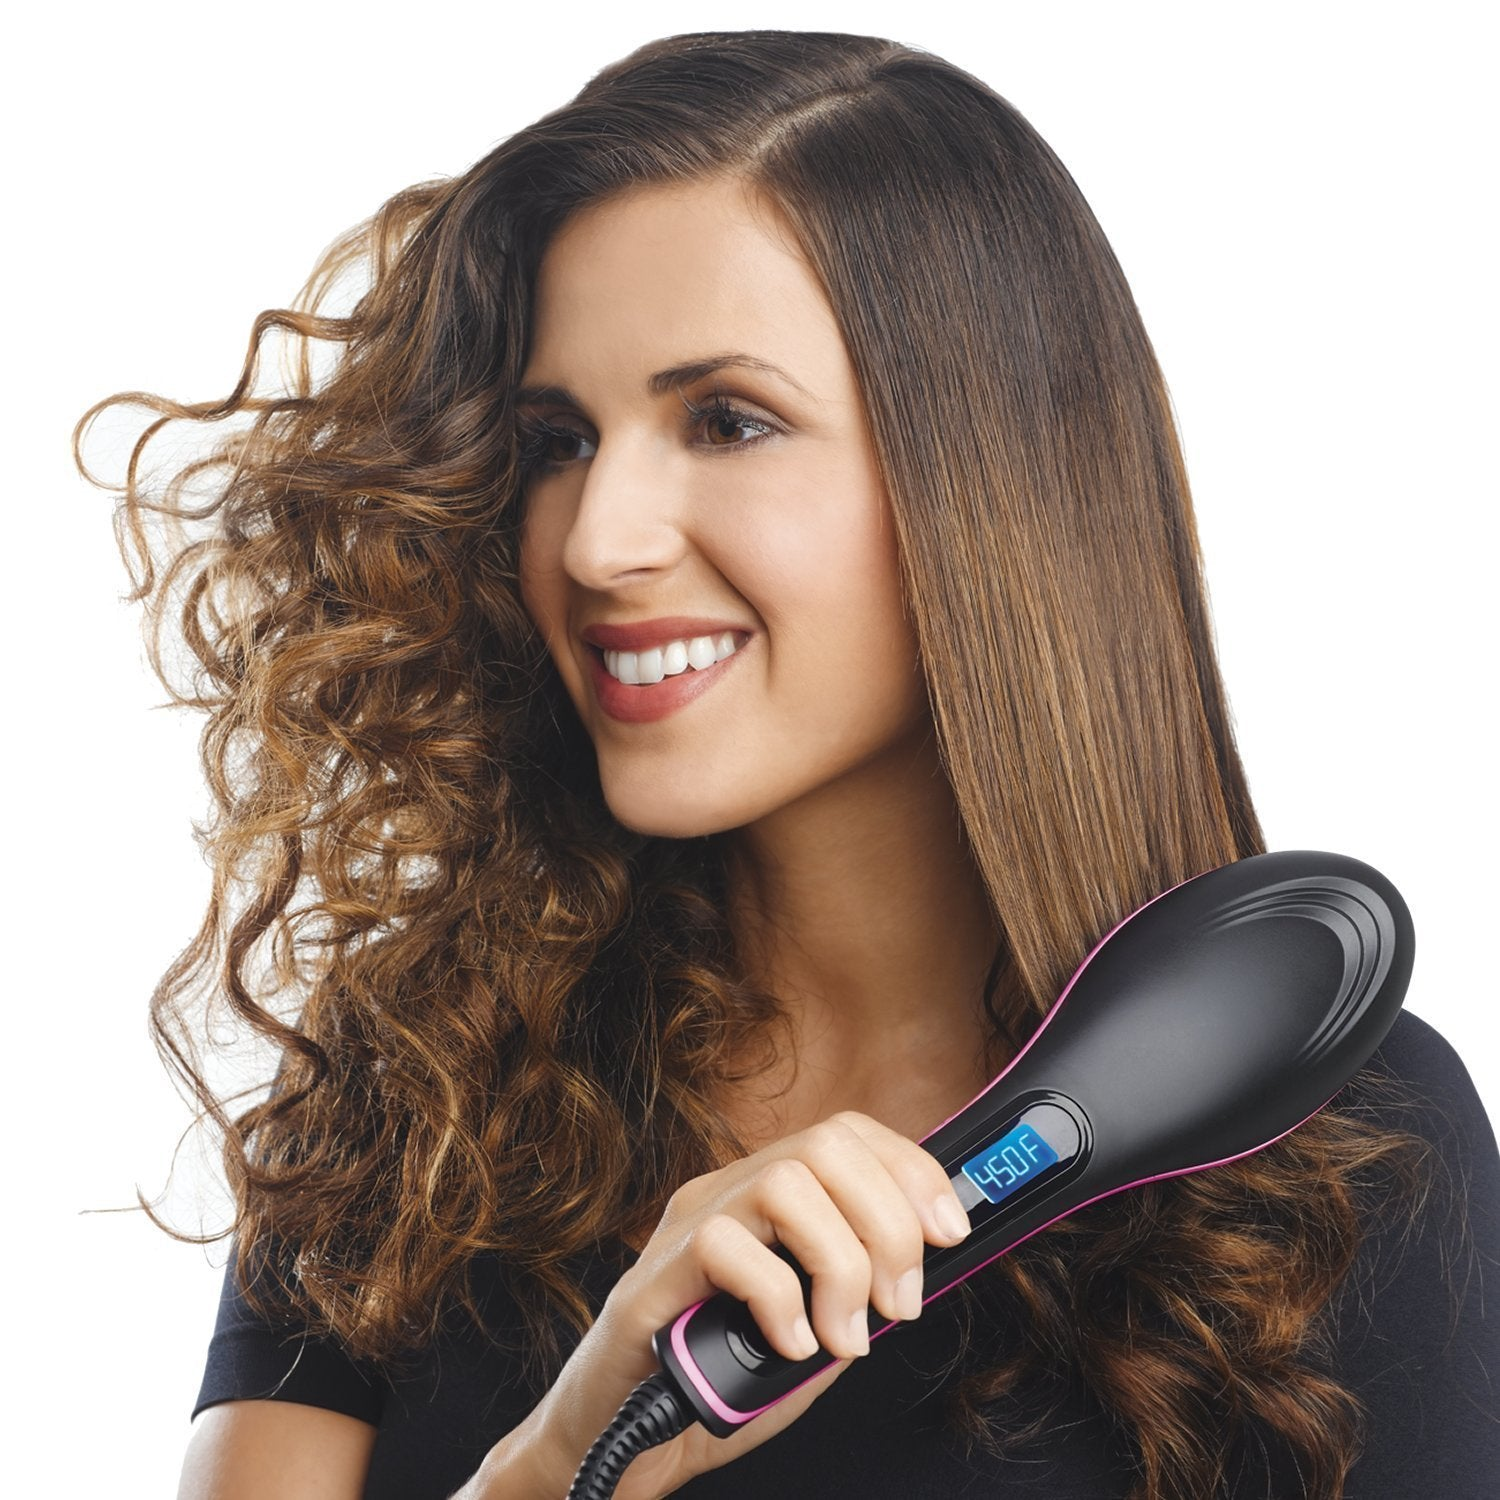 Leihou61 Hair Straightener